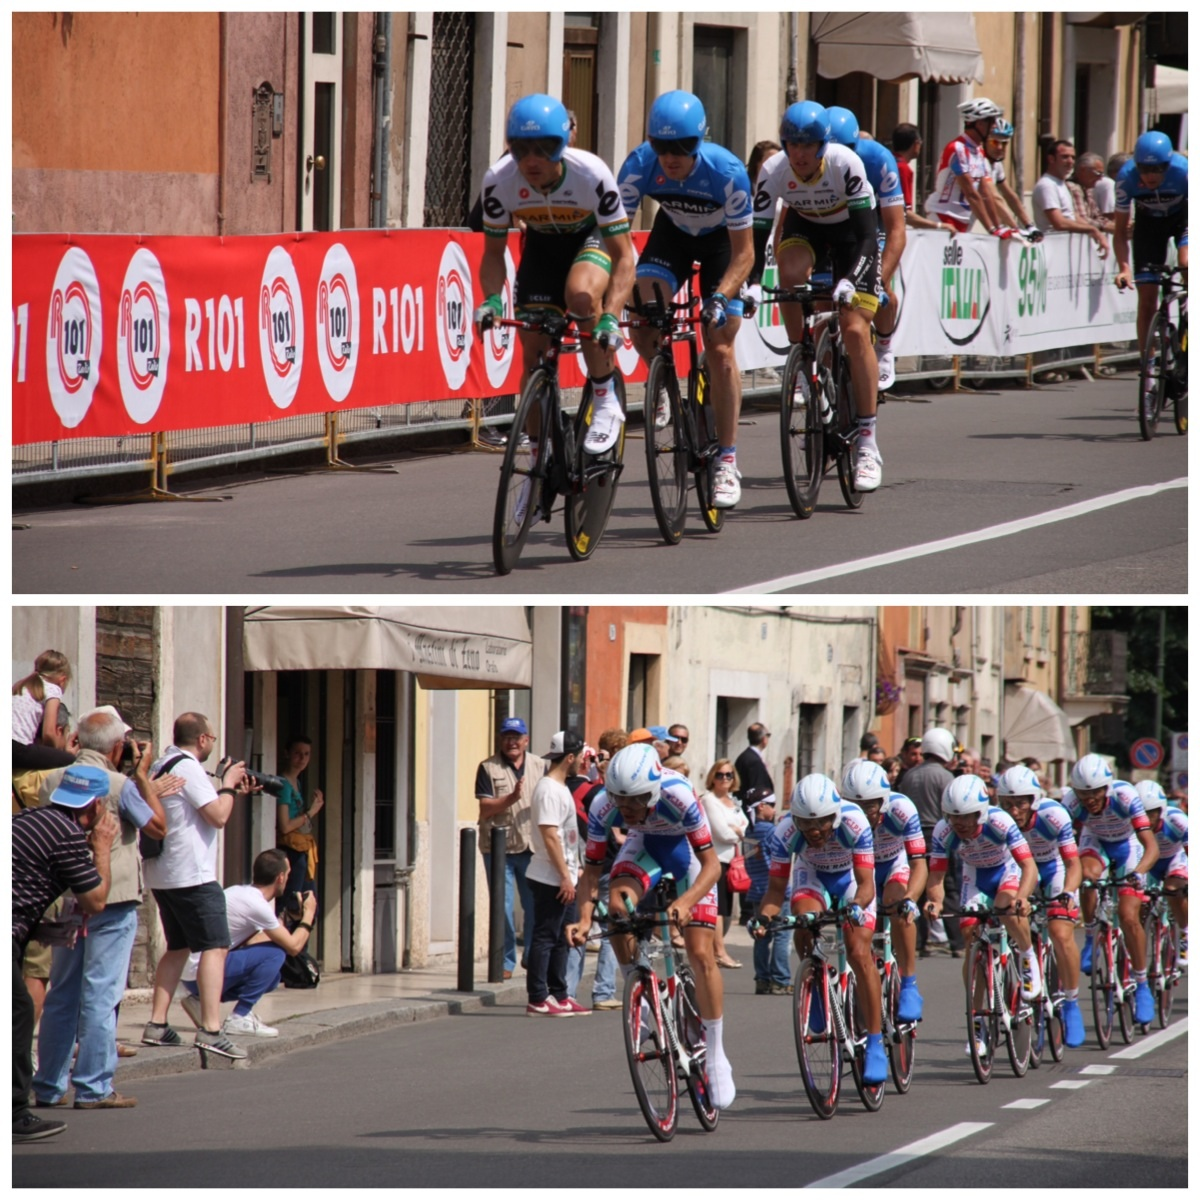 The Giro D'Italia cycle race in Italy